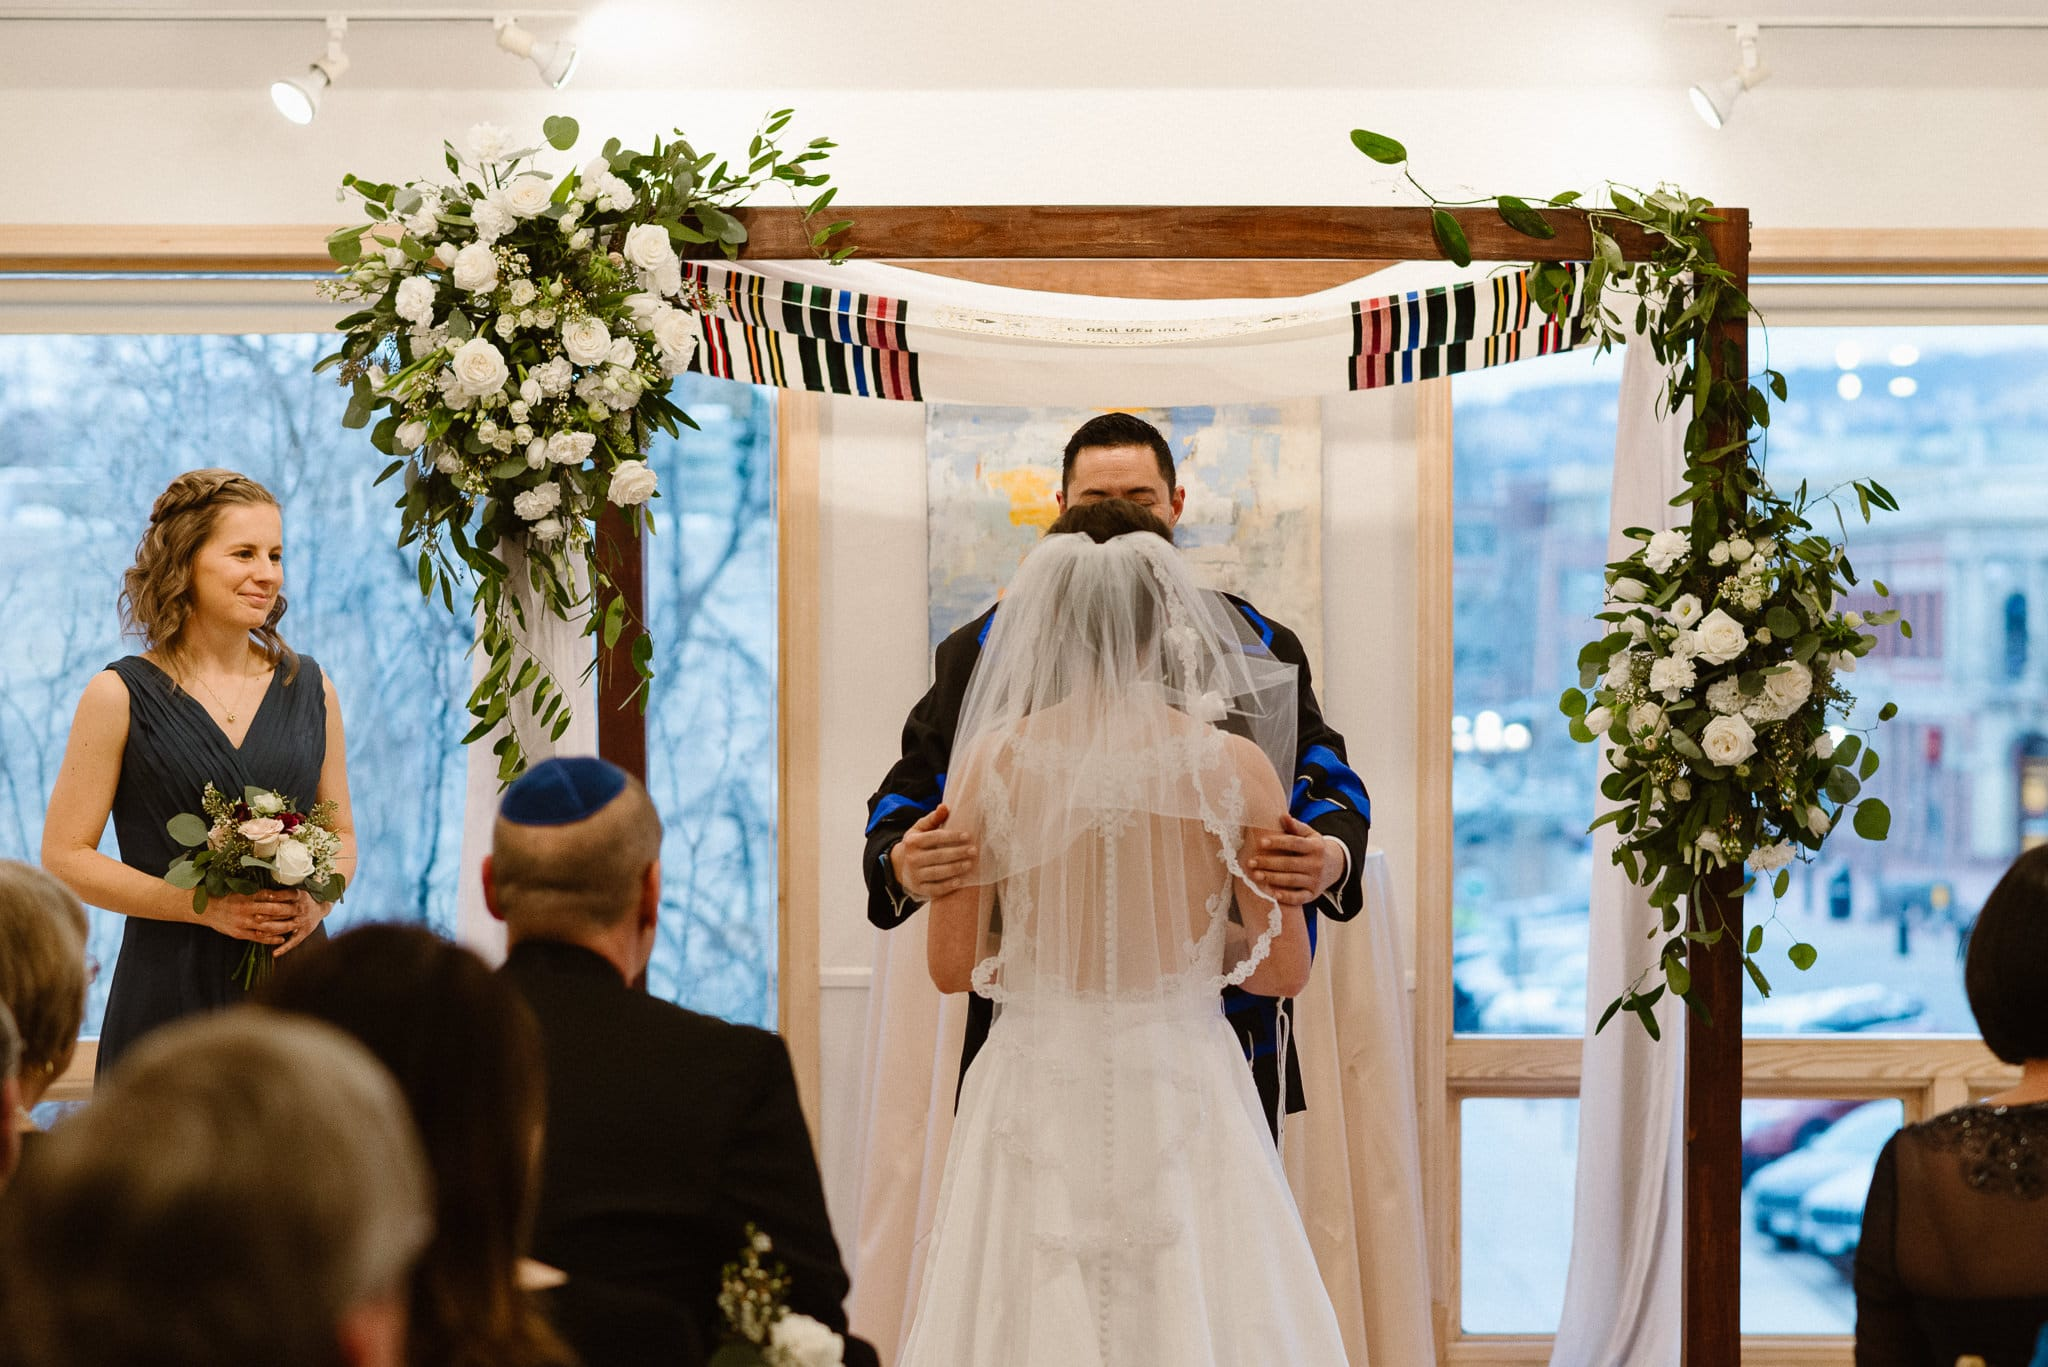 Rembrandt Yard wedding photographer, Boulder wedding photographer, Colorado Jewish wedding, groom lifting bride's veil